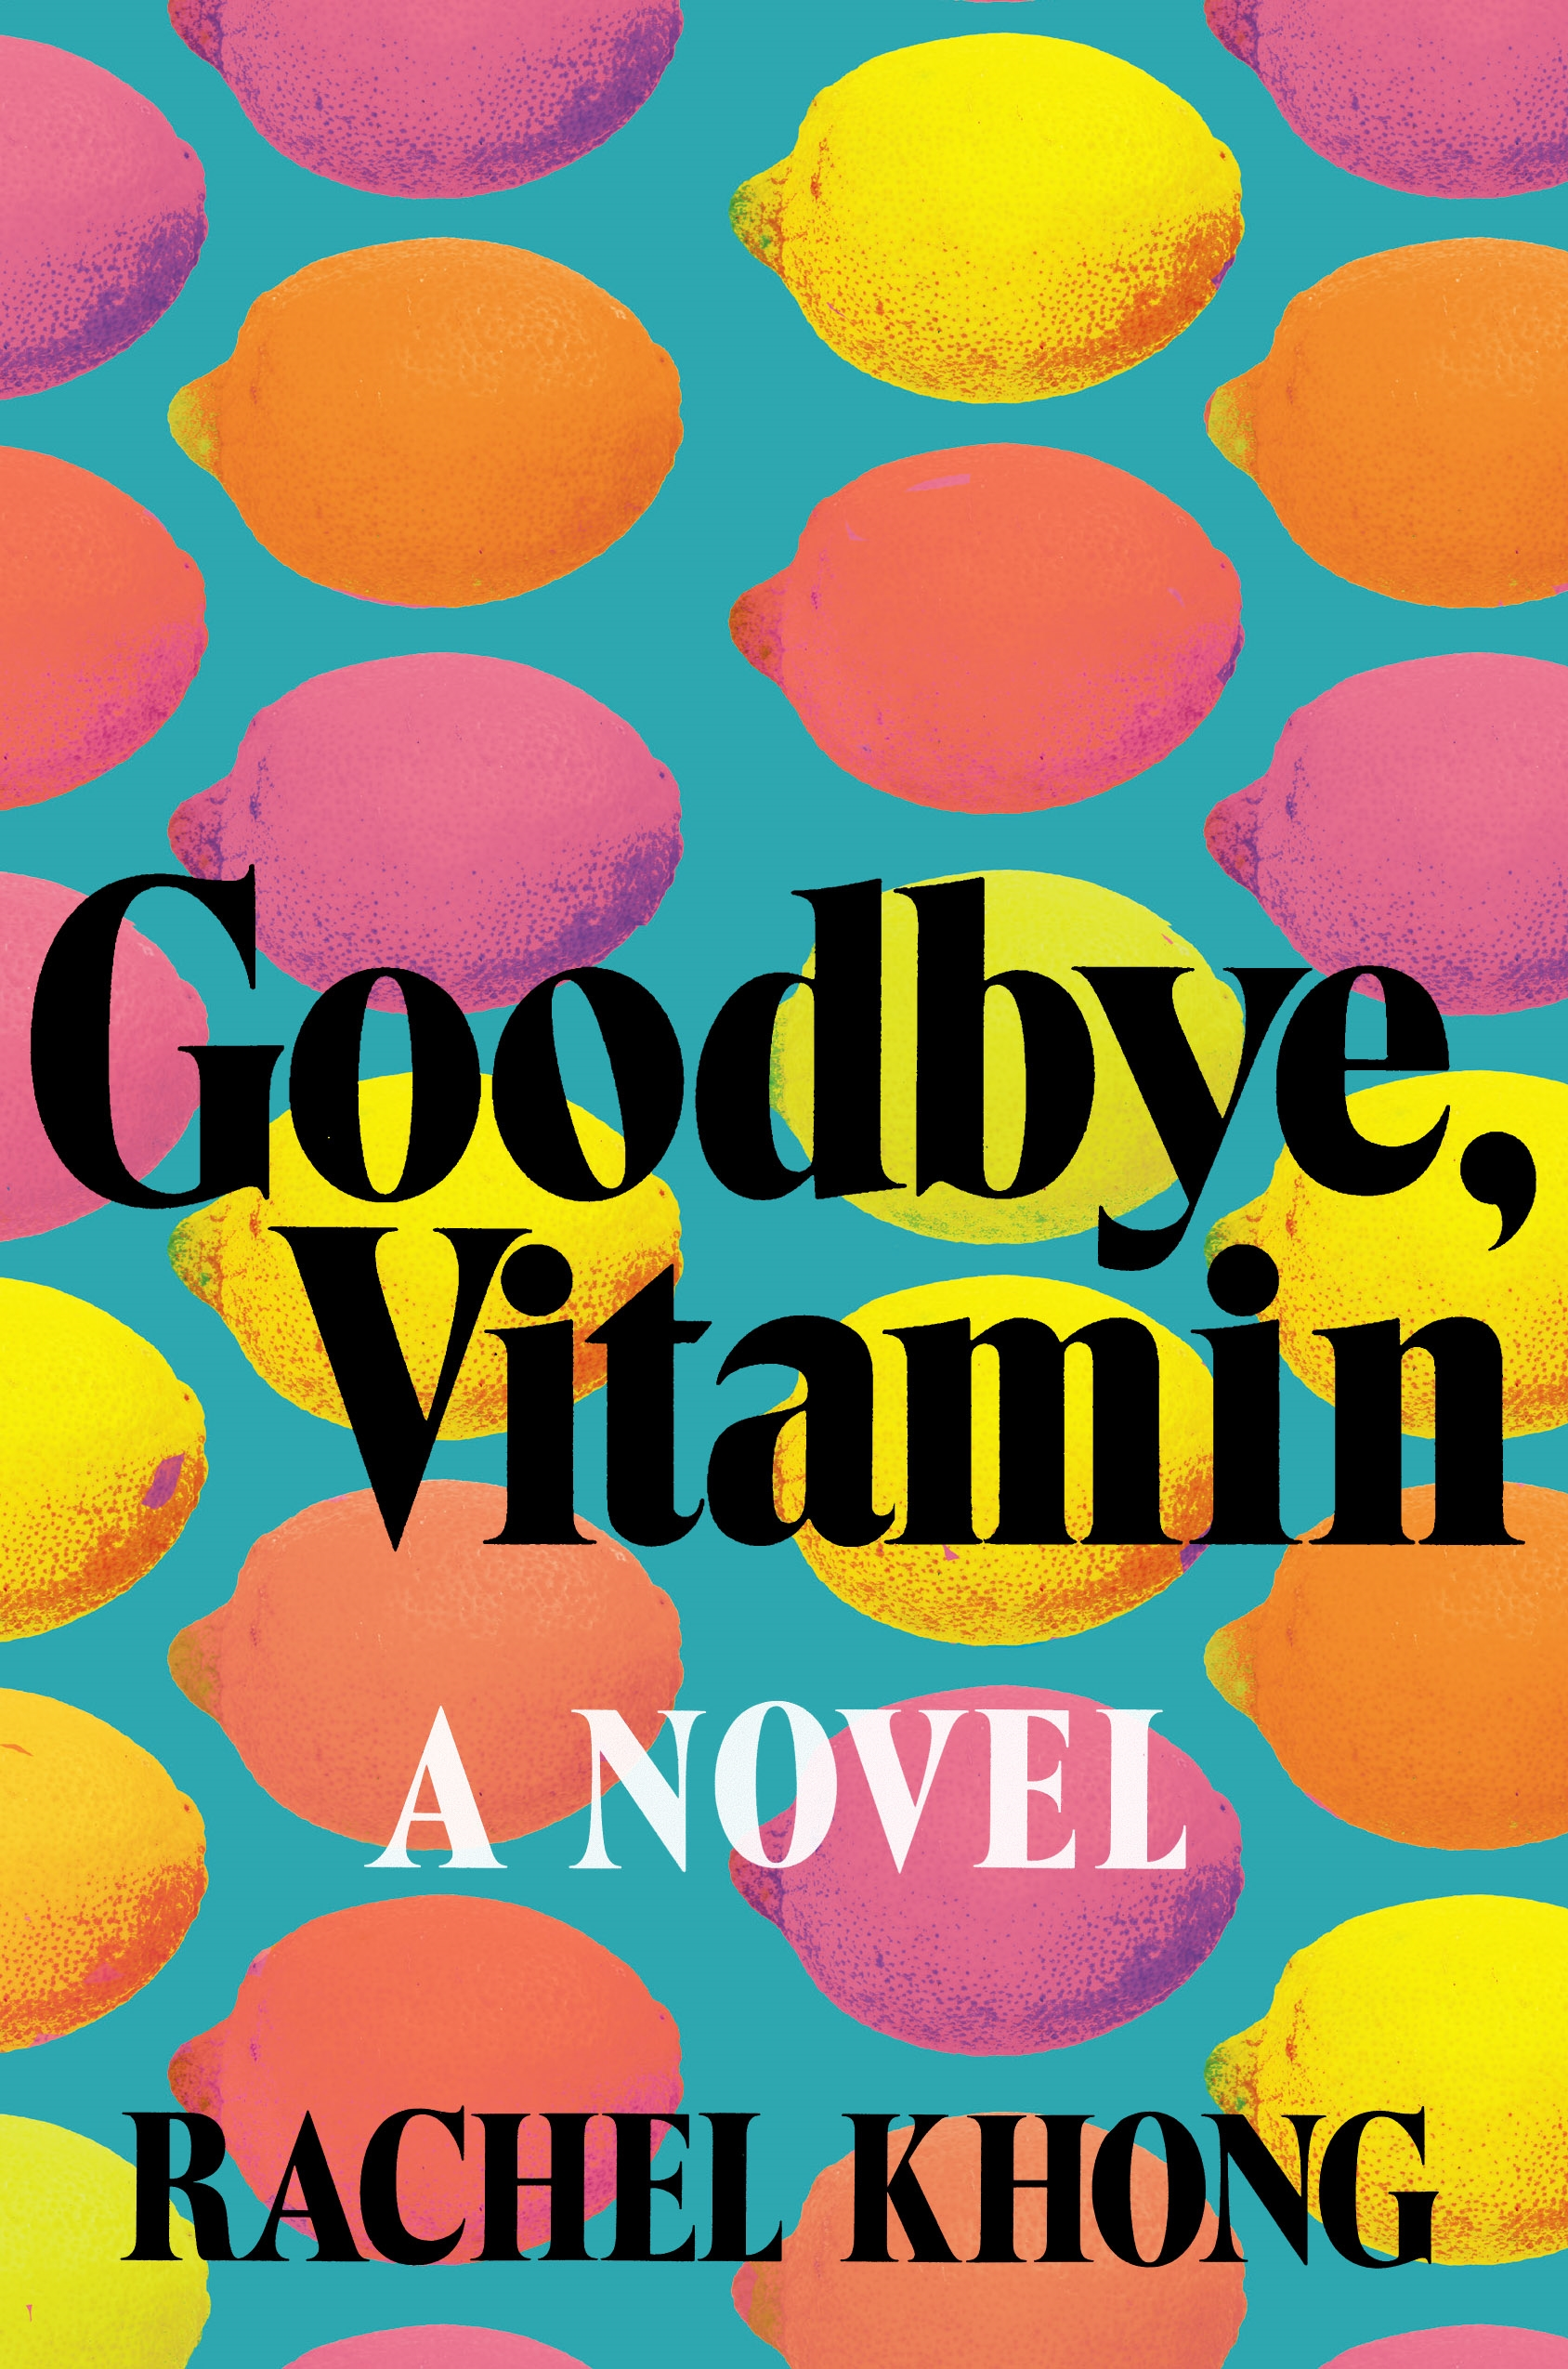 5 Books to Read that will Get You Through April Showers - 1)Goodbye Vitamin by Rachel Khong